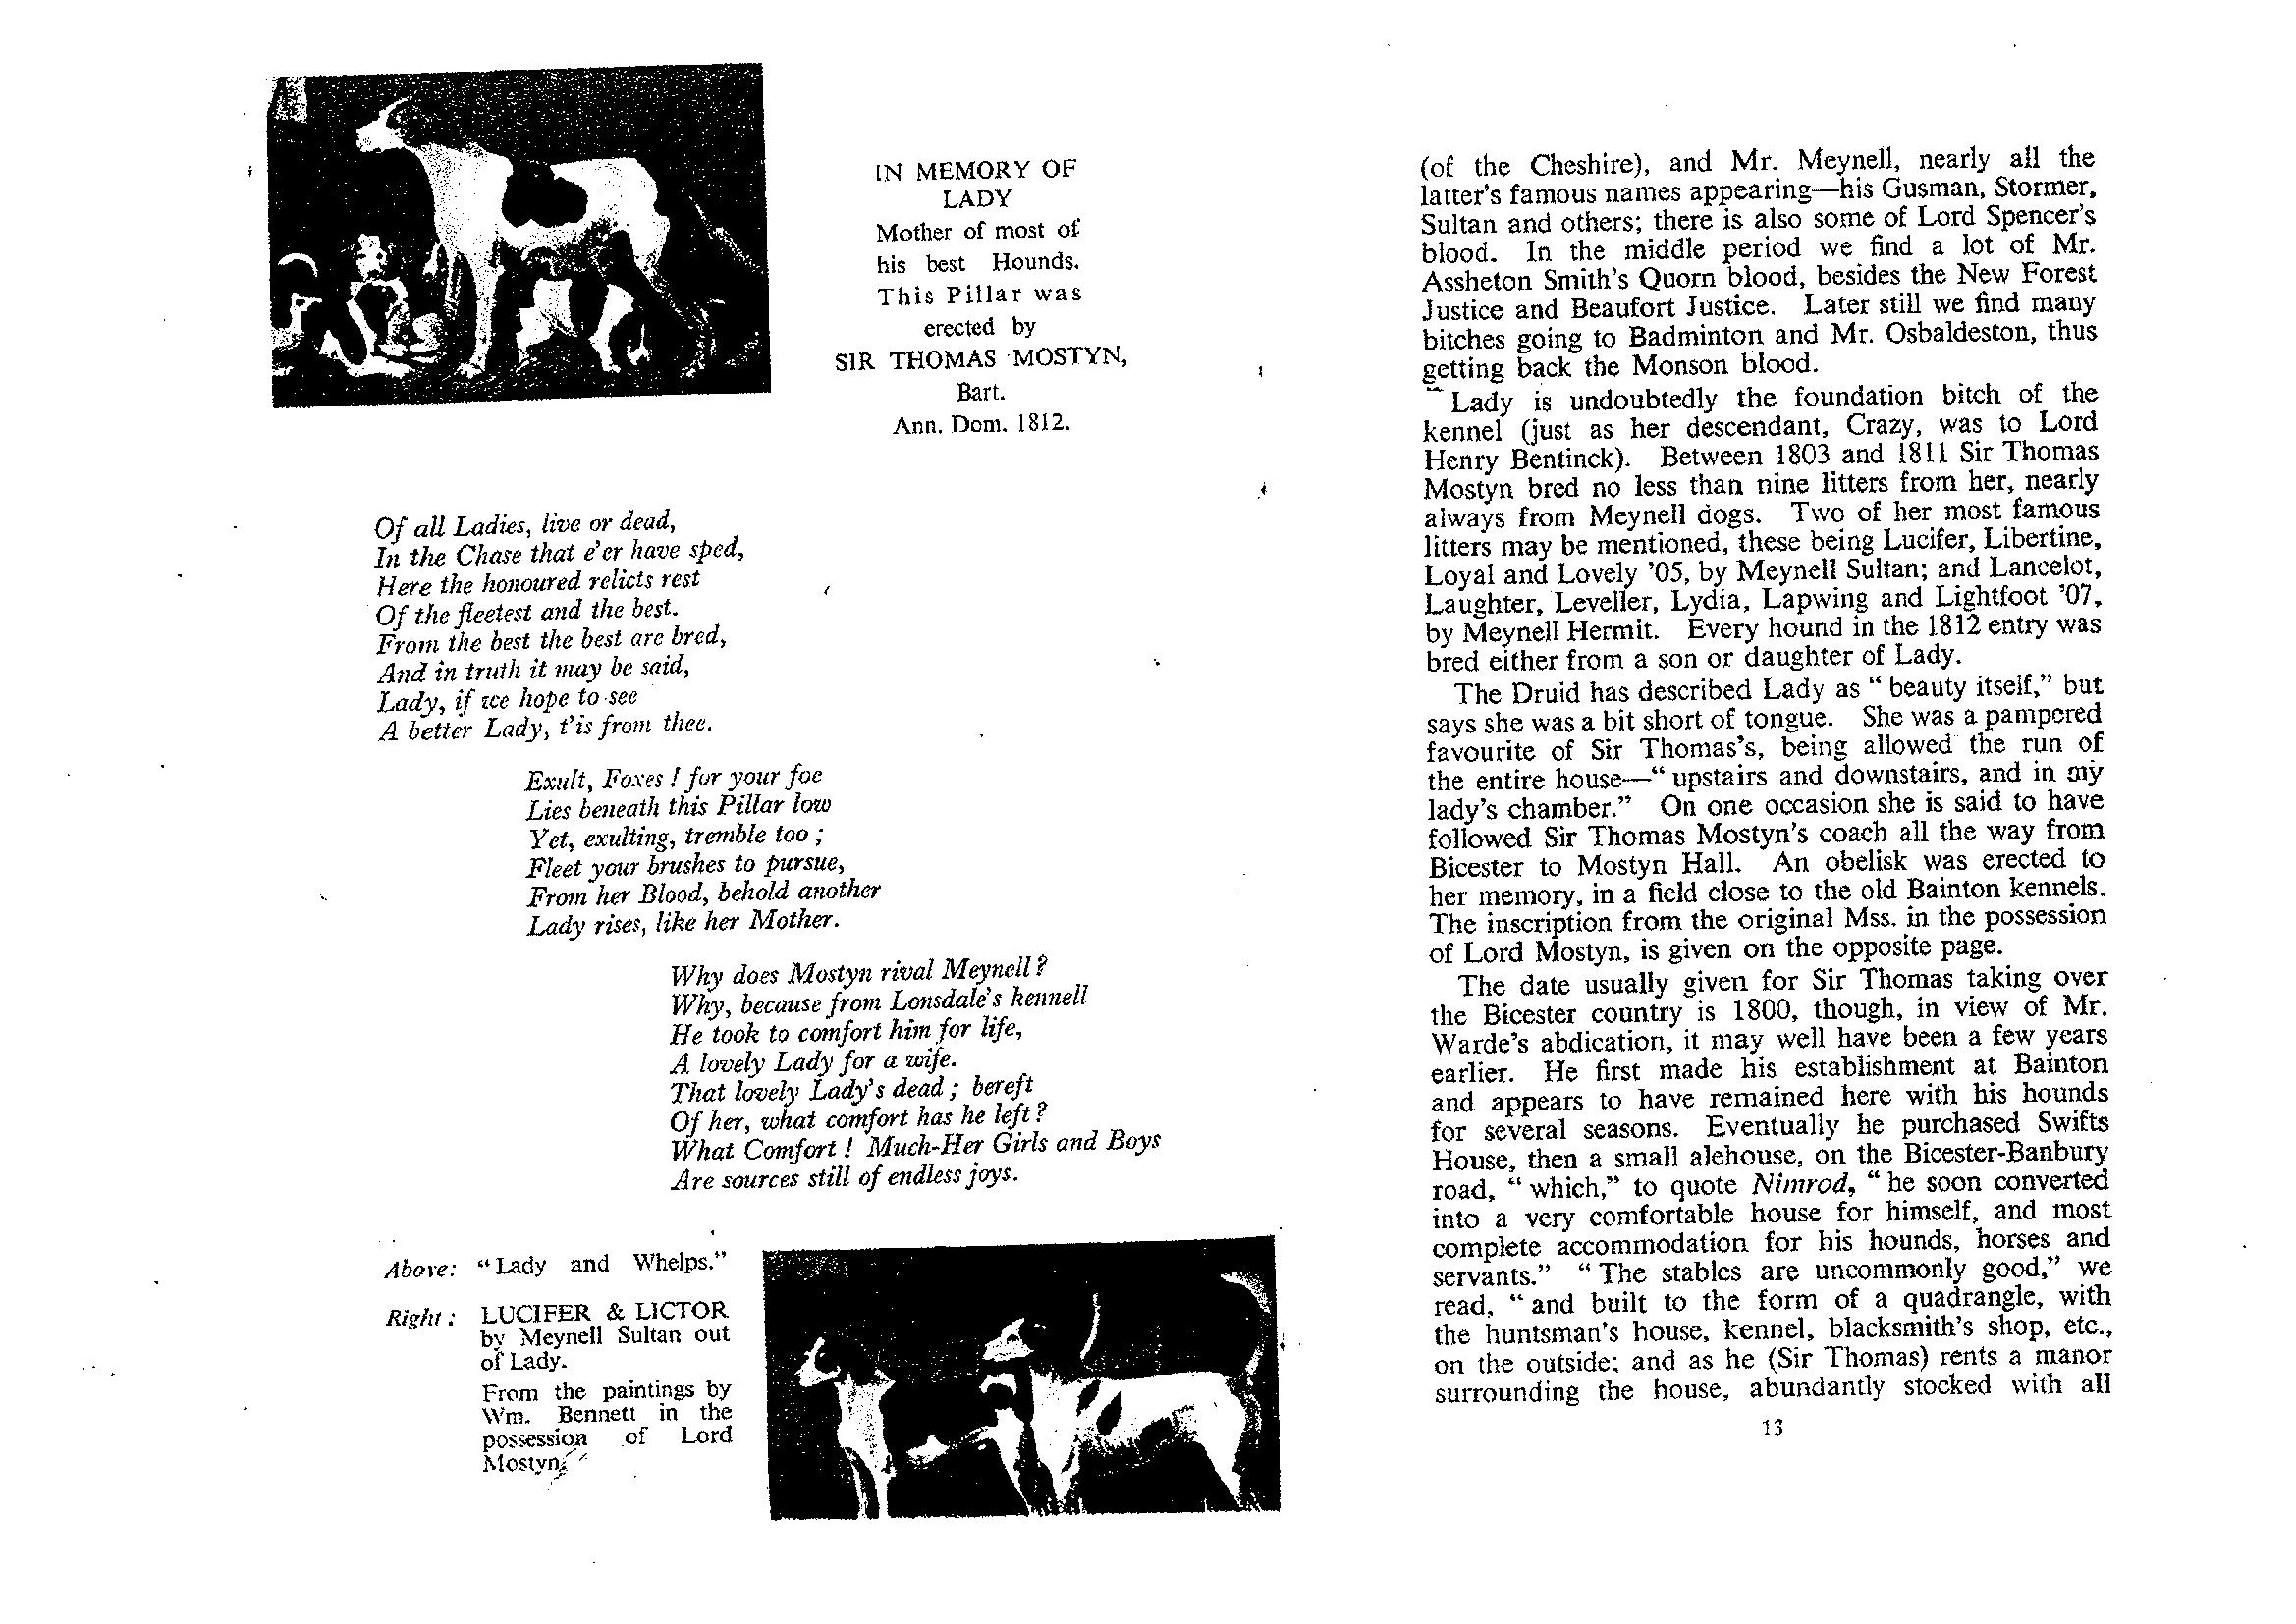 hunting and ralph essay Essay on lord of the flies - a character study of ralph this essay is a character study of ralph, who is one of the main characters in william golding's 'lord of the flies' i have chosen to analyse ralph's character, as it is the character with which i feel that i can relate most closely.